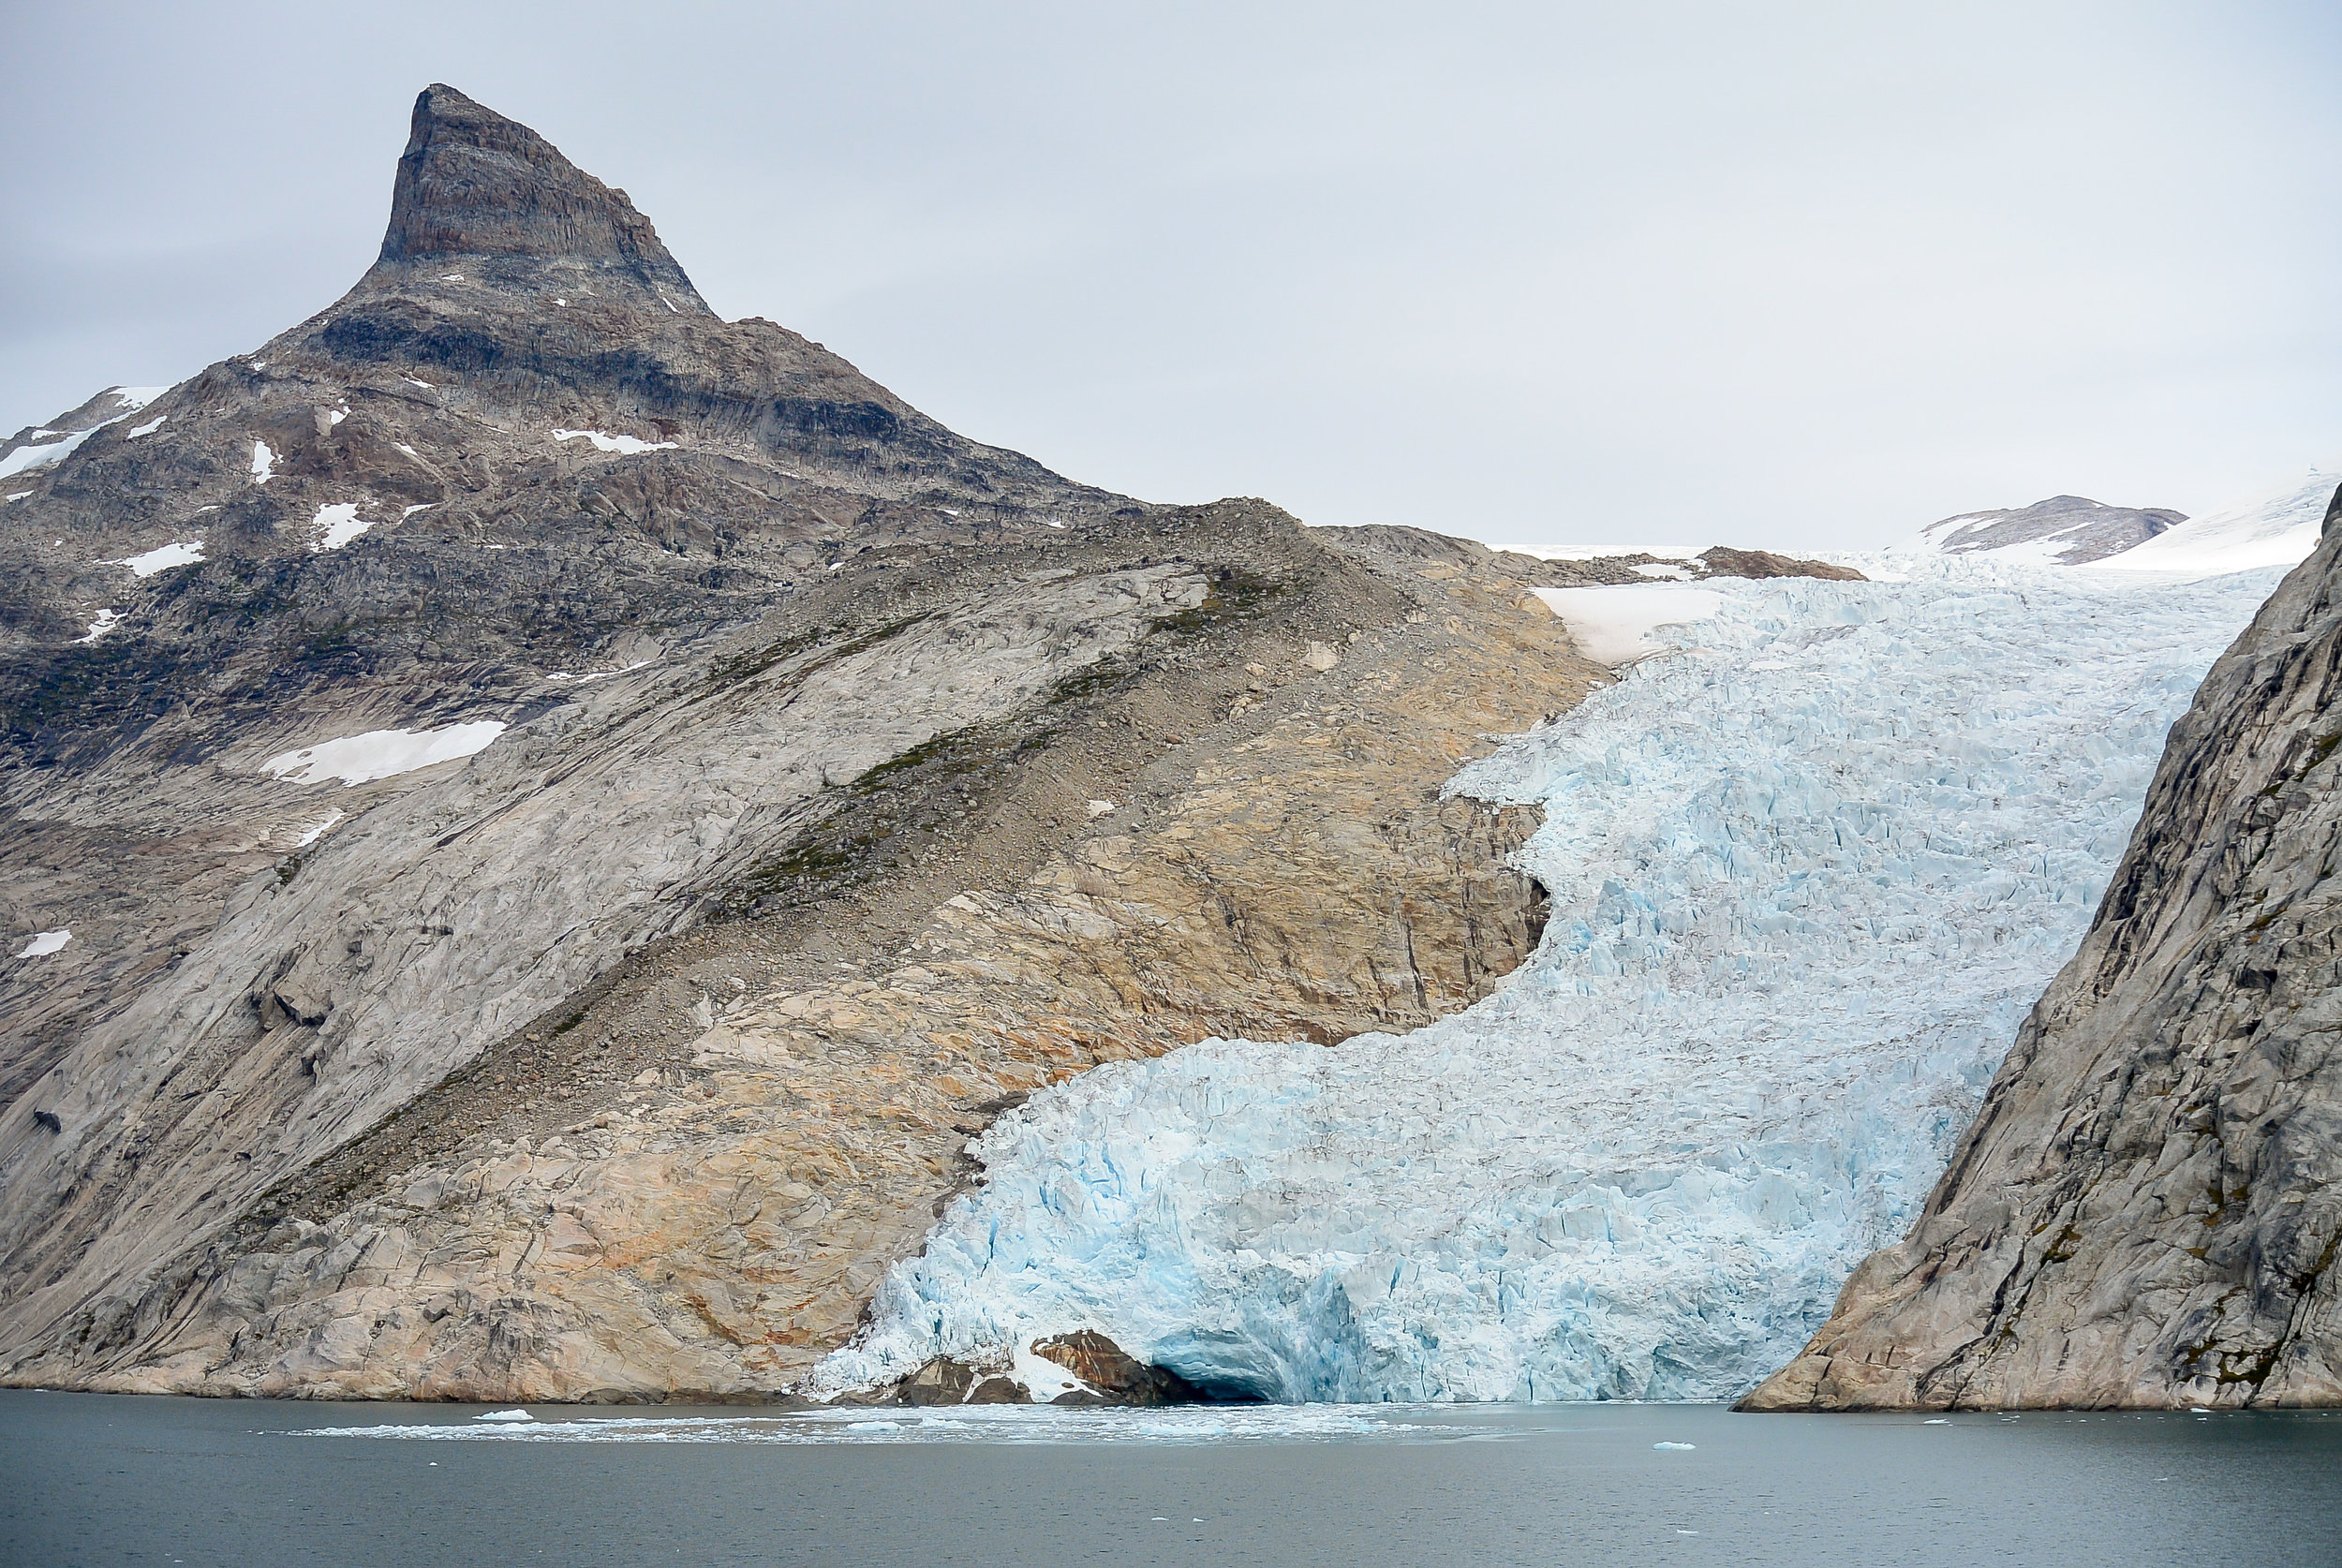 Glacier in Prince Christian Sound, Southern Greenland